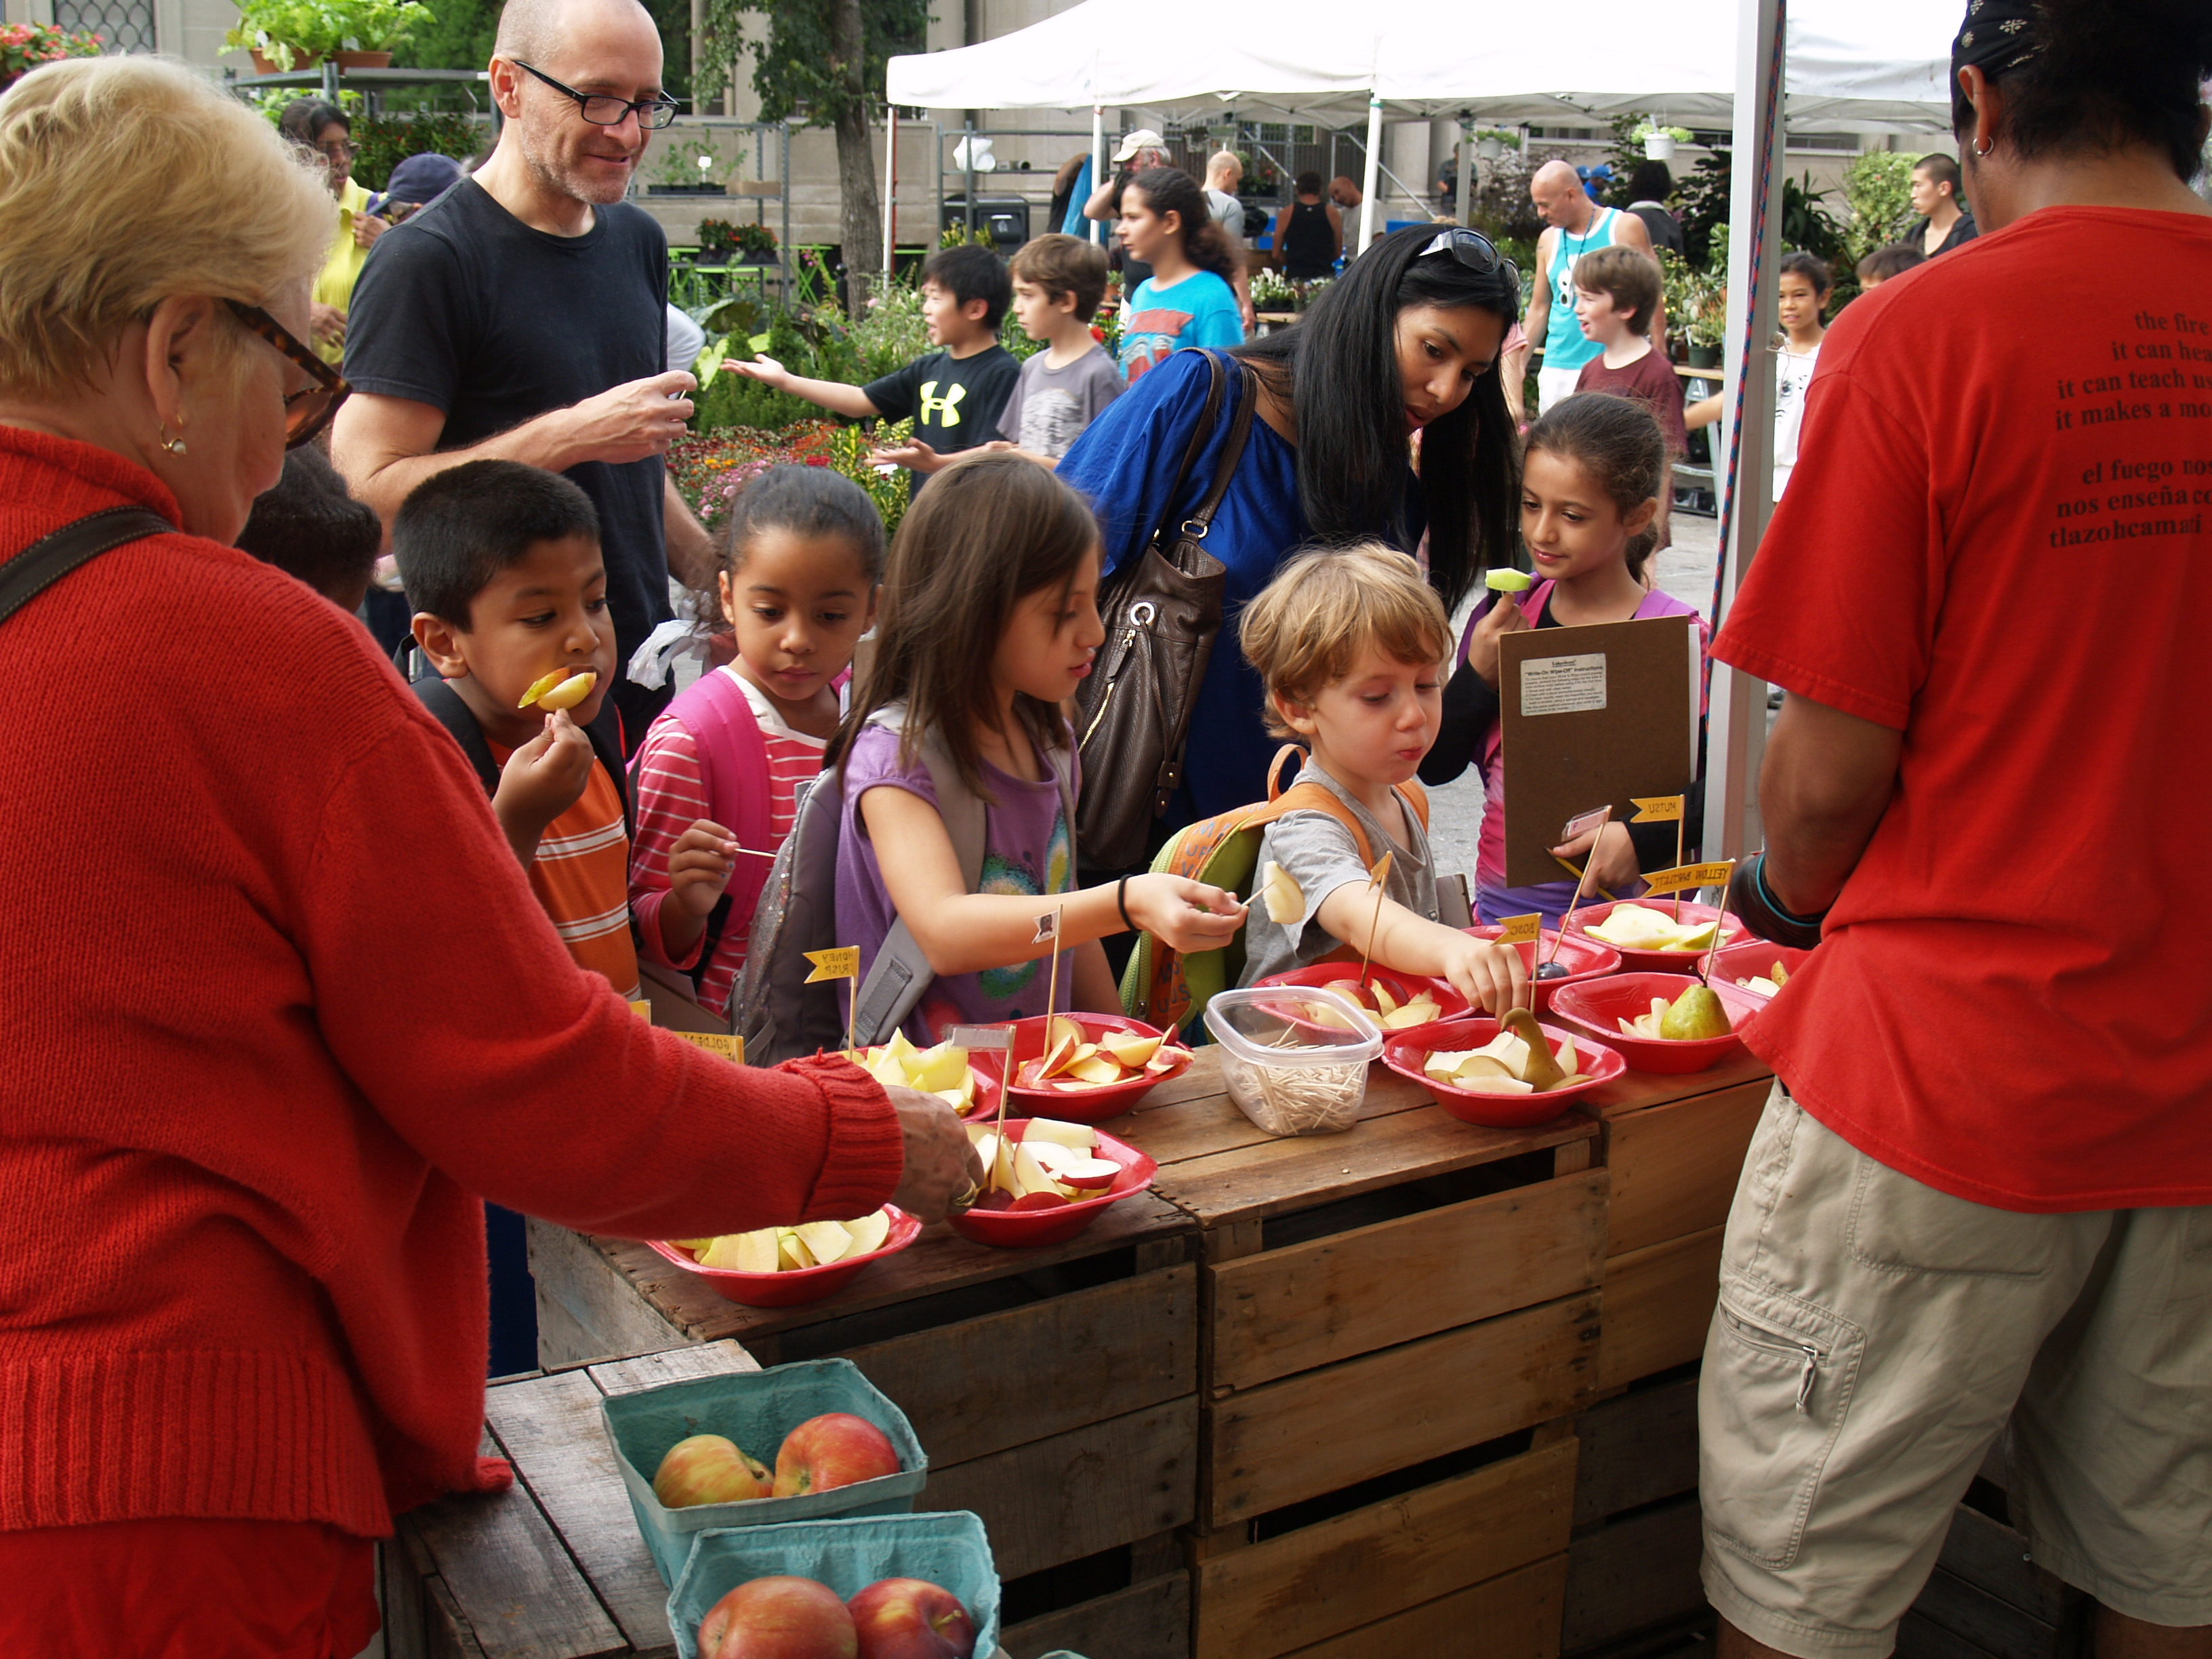 children reaching for apples to taste at a farmer's market booth